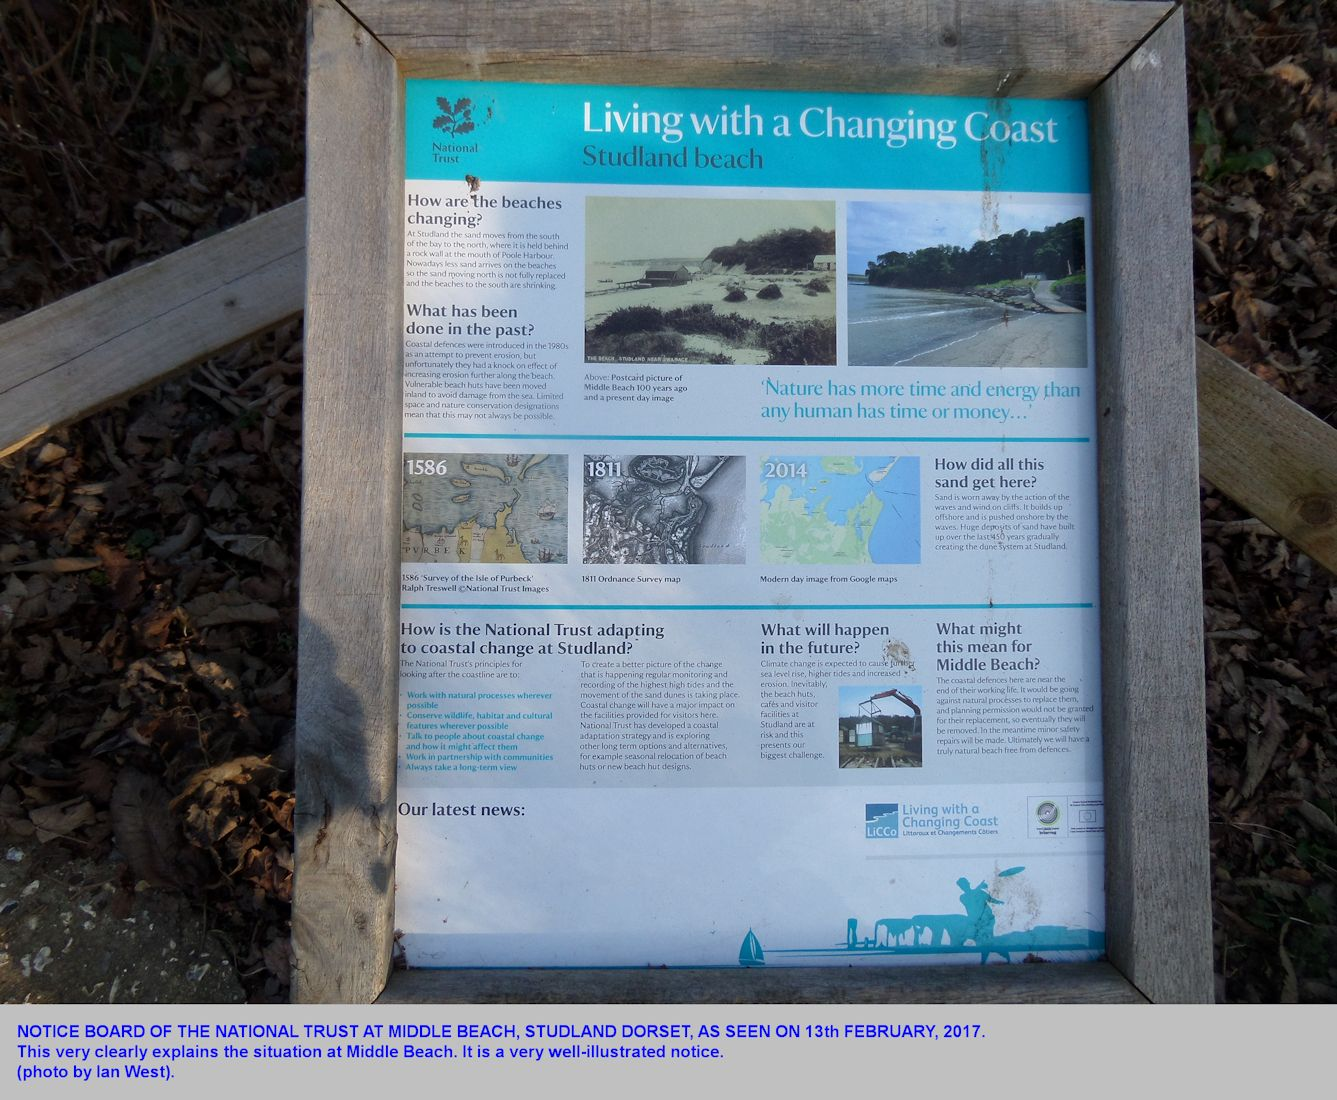 Informative notice board of the National Trust, at Middle Beach, Studland, Dorset, as seen on the 13th February 2017